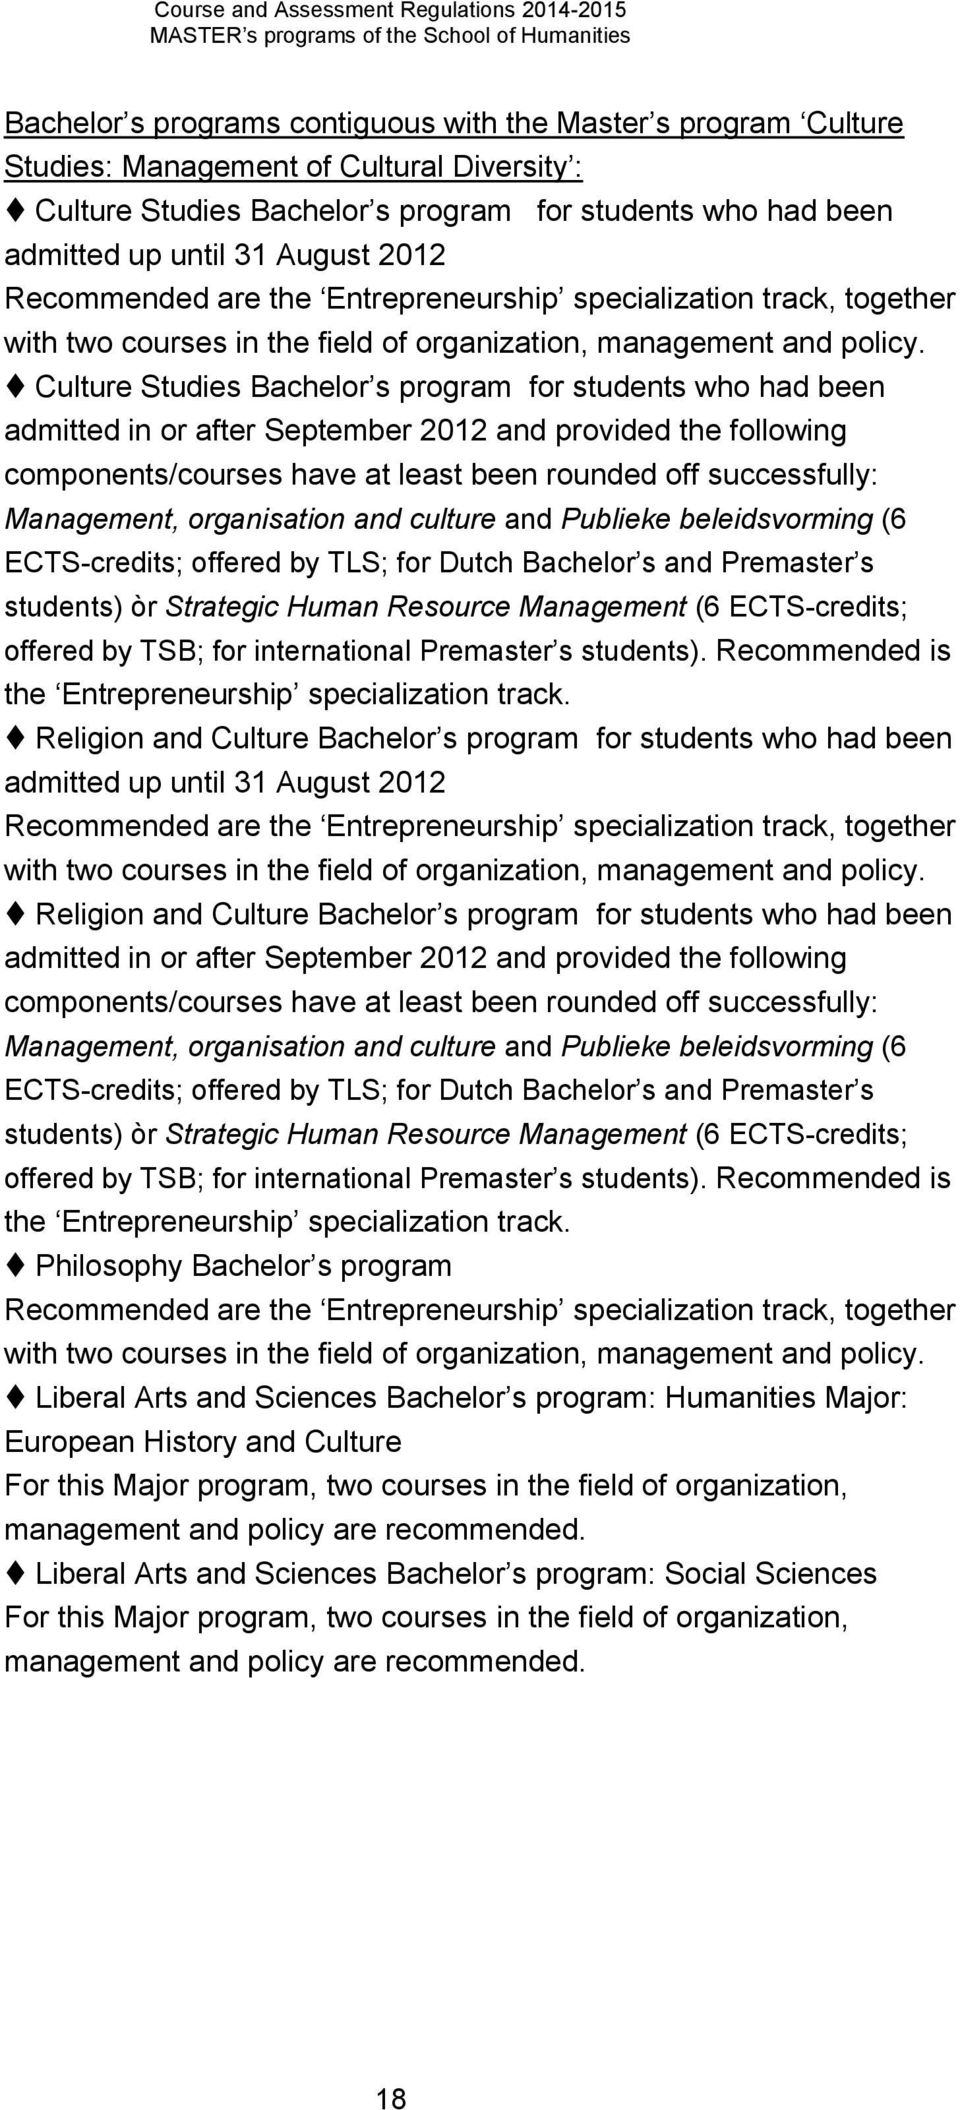 Culture Studies achelor s program for students who had been admitted in or after September 2012 and provided the following components/courses have at least been rounded off successfully: Management,